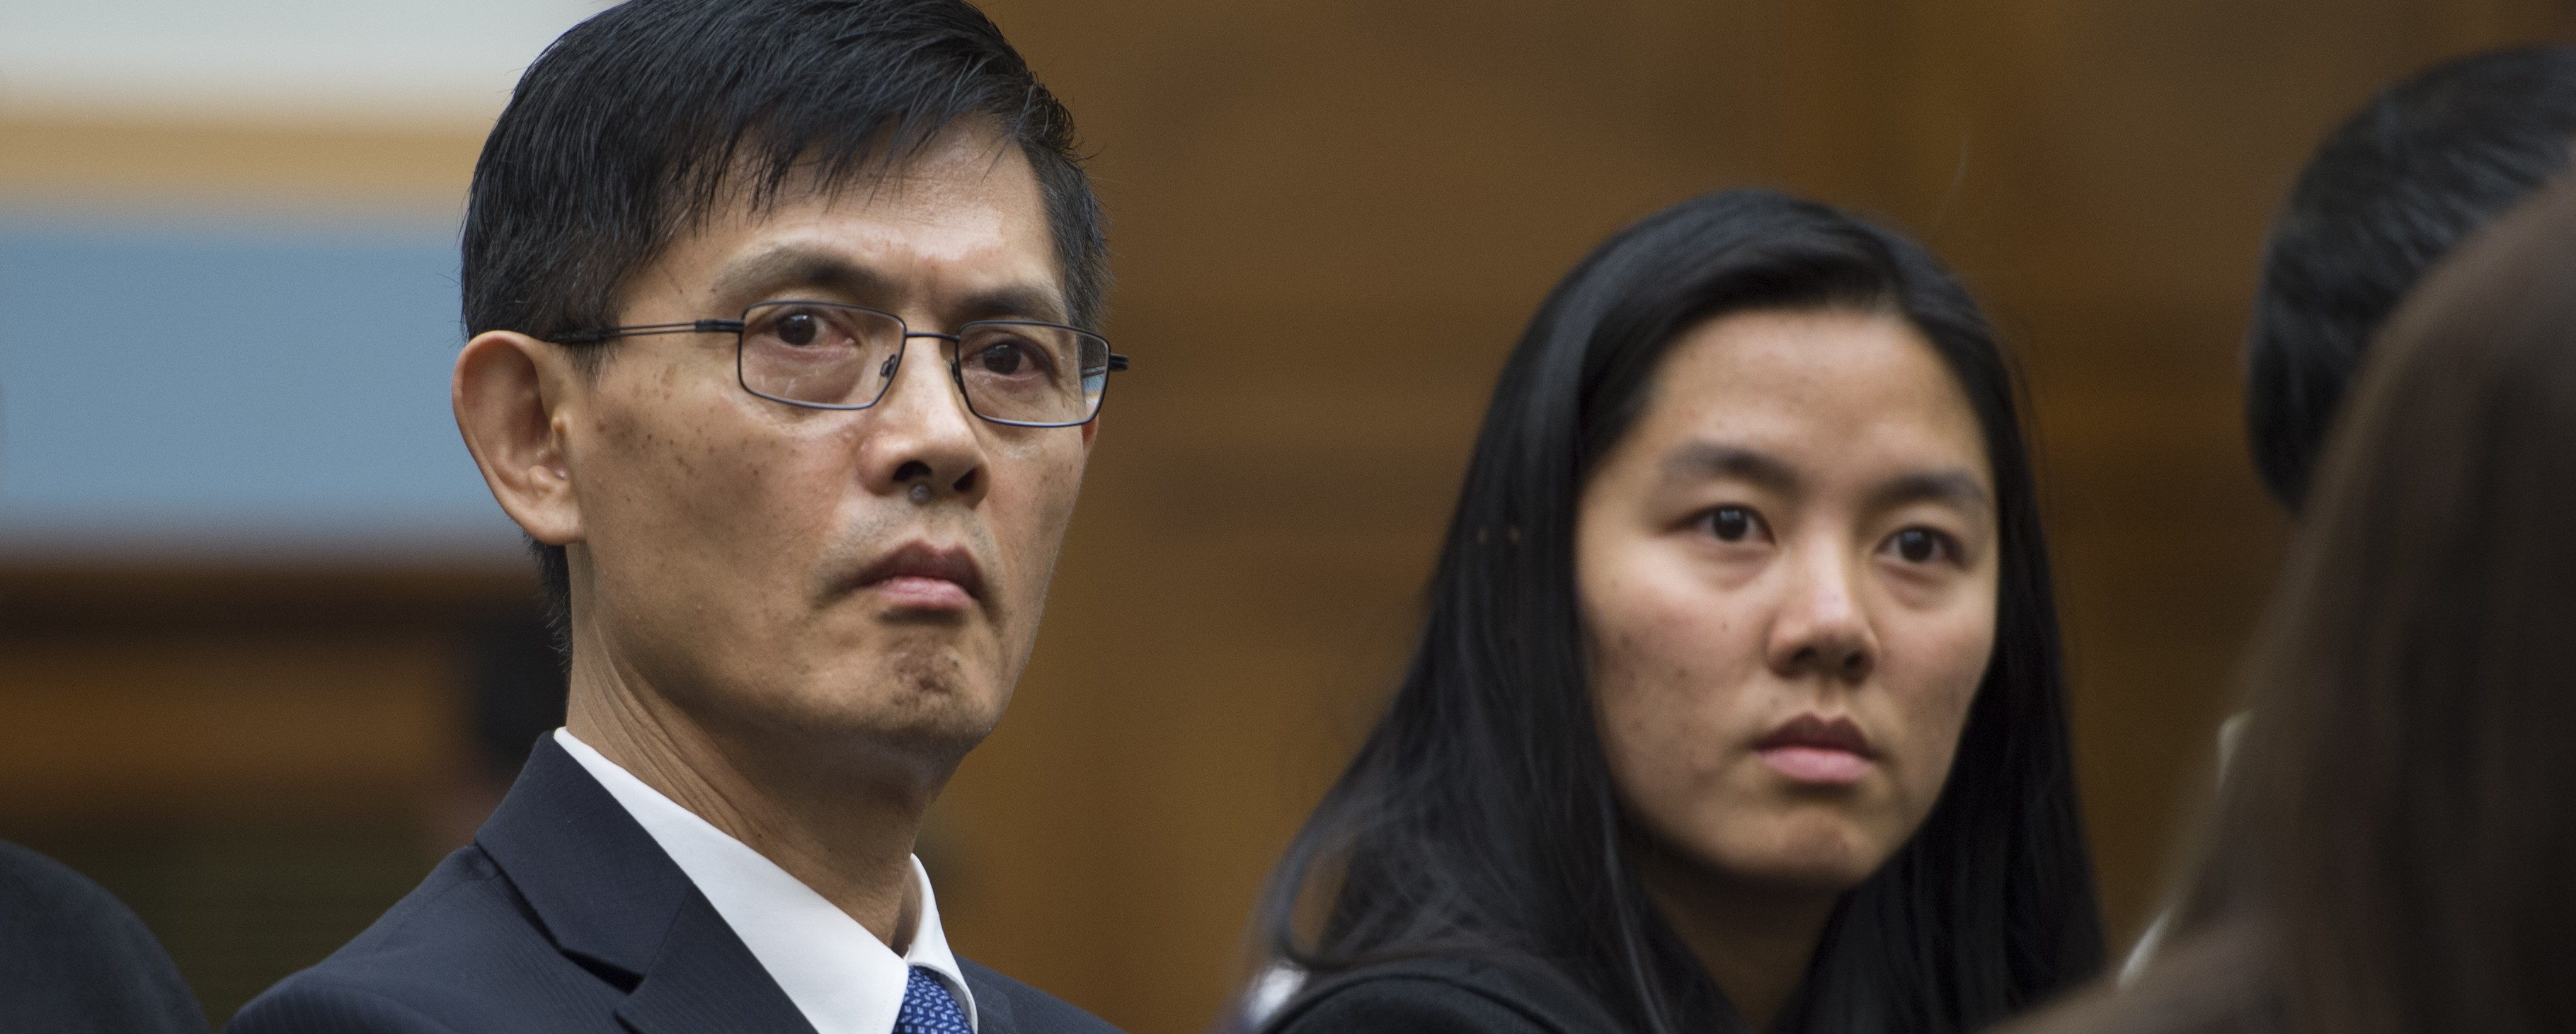 Why Does the FBI Keep Arresting Asian-American Scientists?